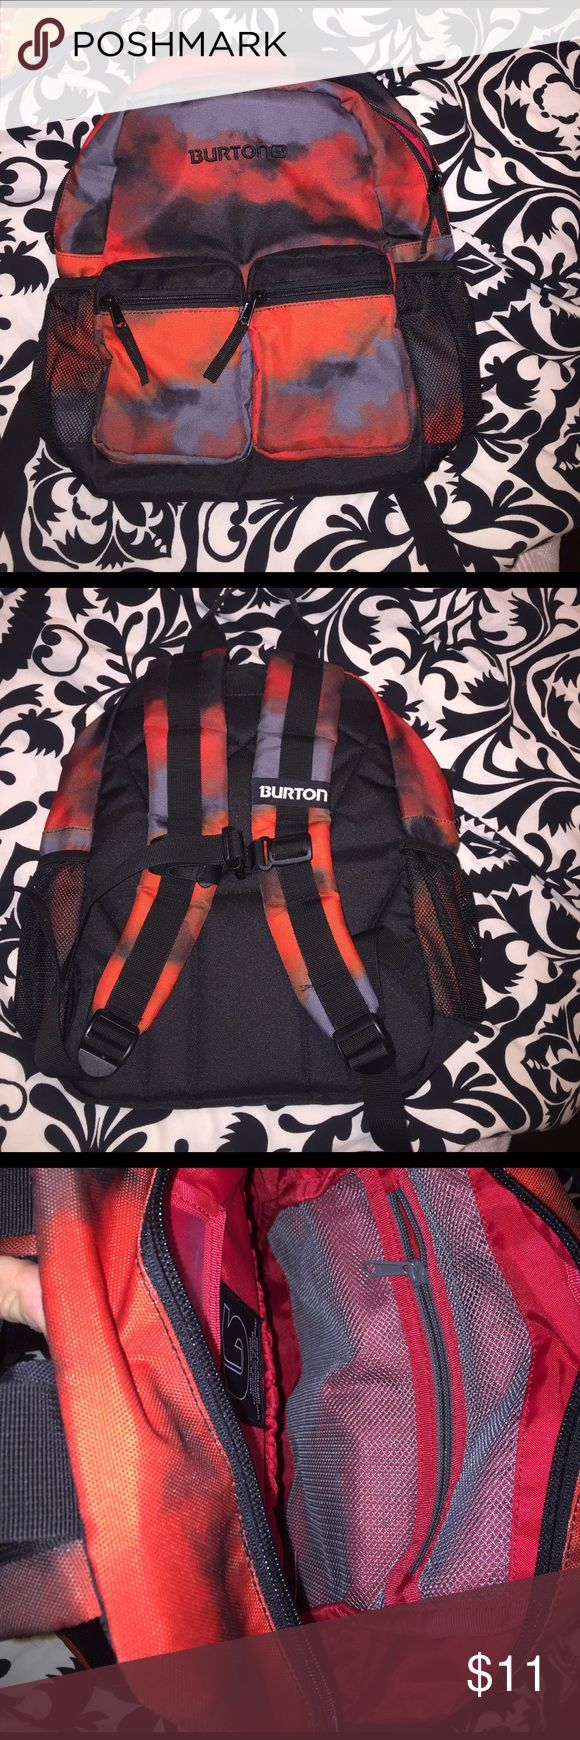 Burton kids backpack Burton kids backpack. Preschool size. Red and black tie dye print. Two front zip pockets. Two mesh pockets on outside sides. Internal mesh compartments. Great condition Burton Accessories Bags